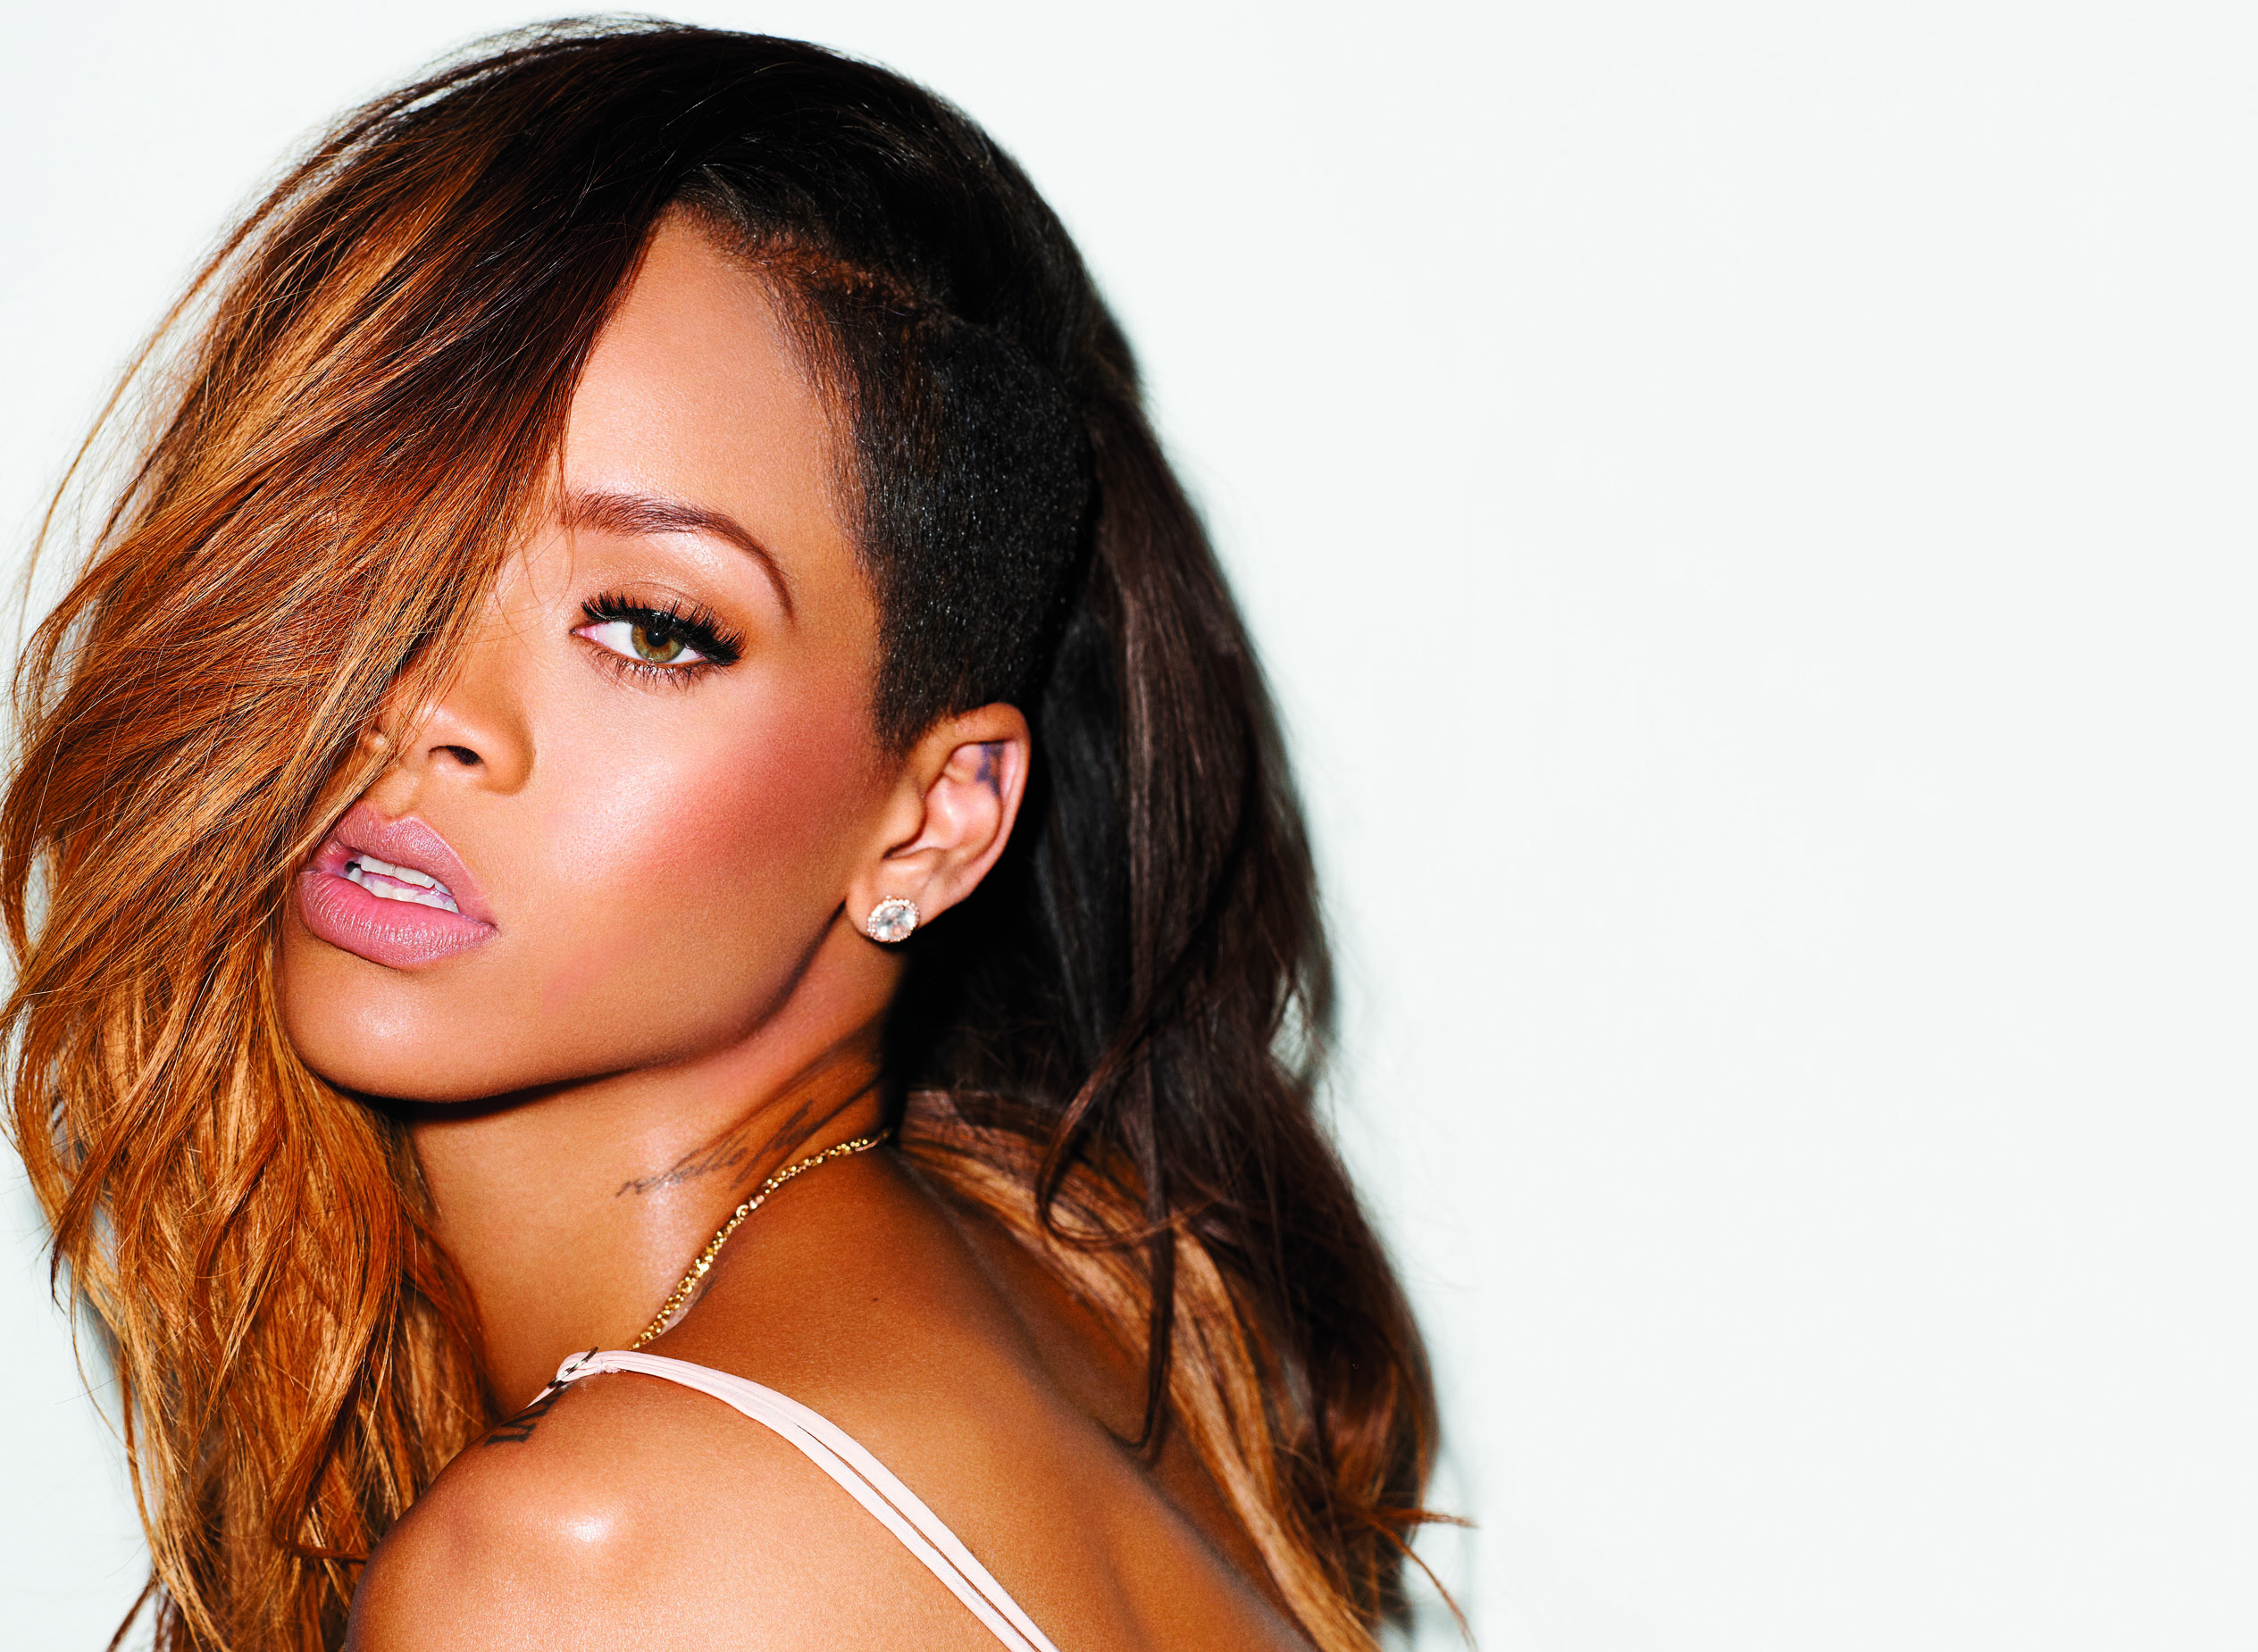 157 rihanna hd wallpapers background images wallpaper abyss 157 rihanna hd wallpapers background images wallpaper abyss page 2 voltagebd Gallery